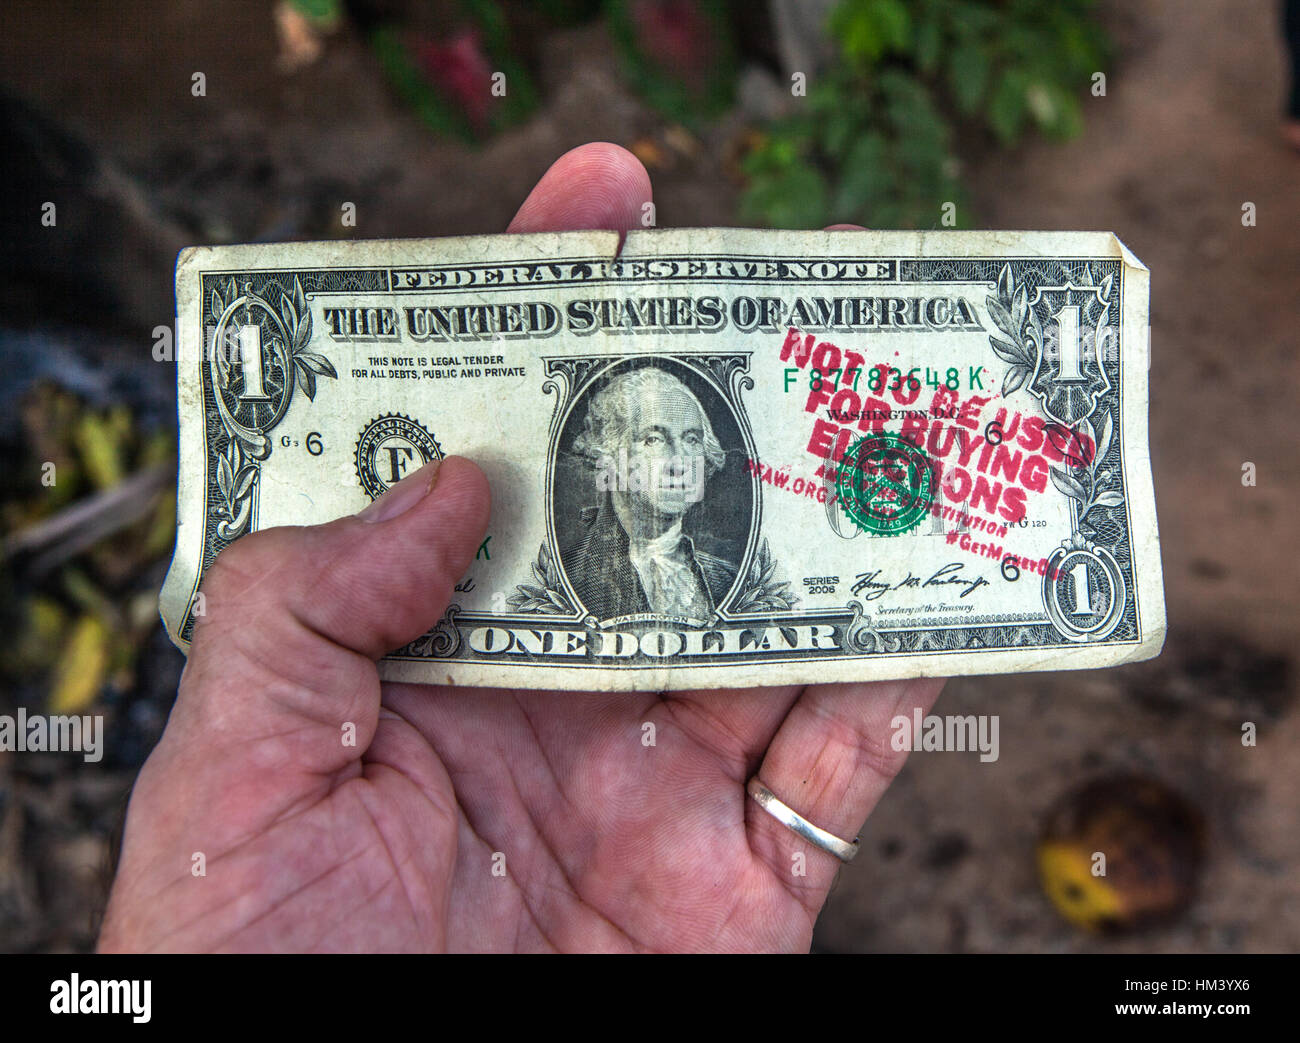 A Dollar Bill Stamped By The People For American Way Anti Trump Organization Says Not To Be Used Buy Elections